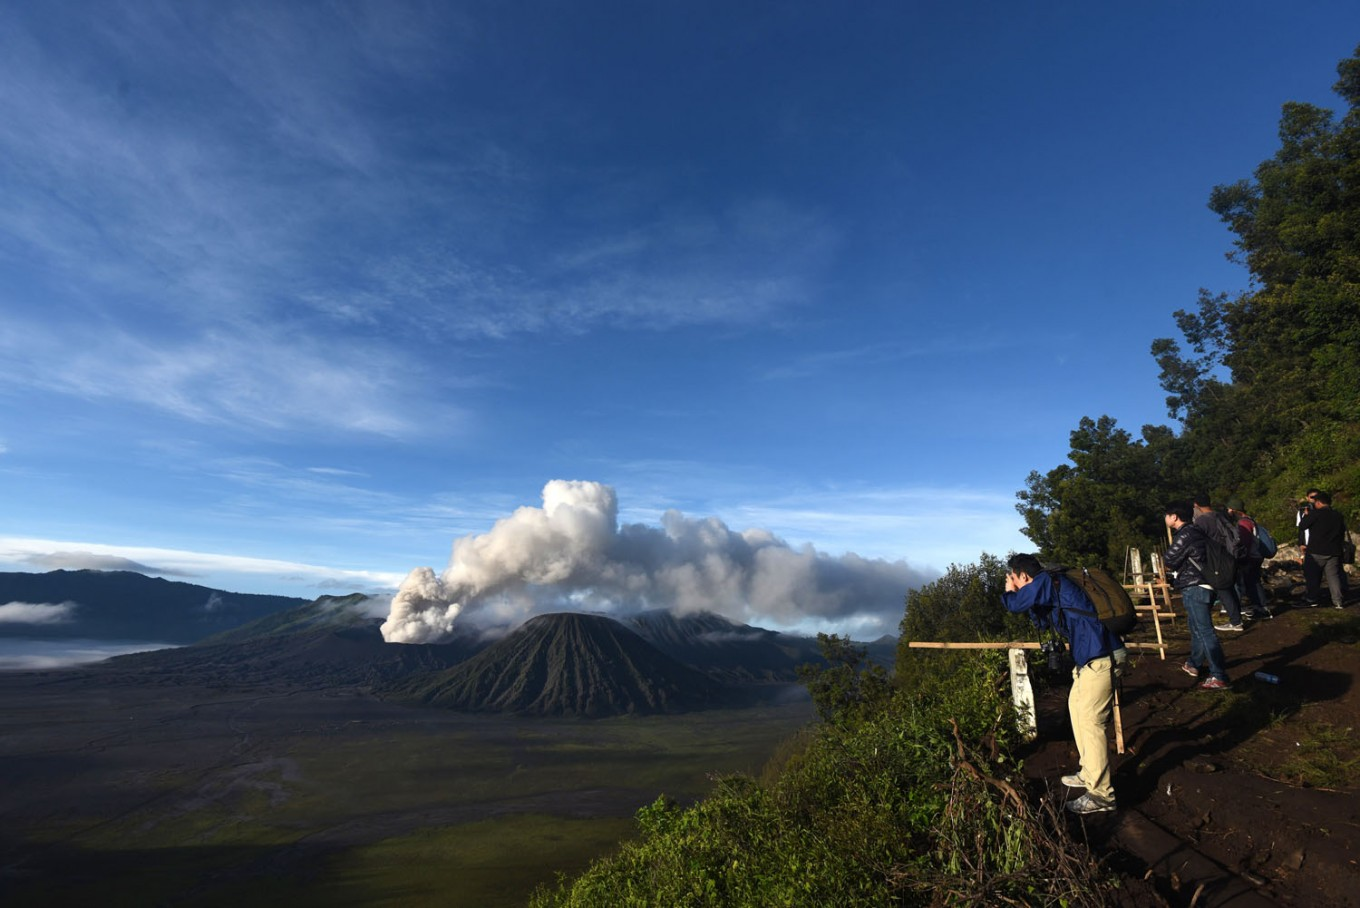 Swiss national reported missing on Mt. Semeru